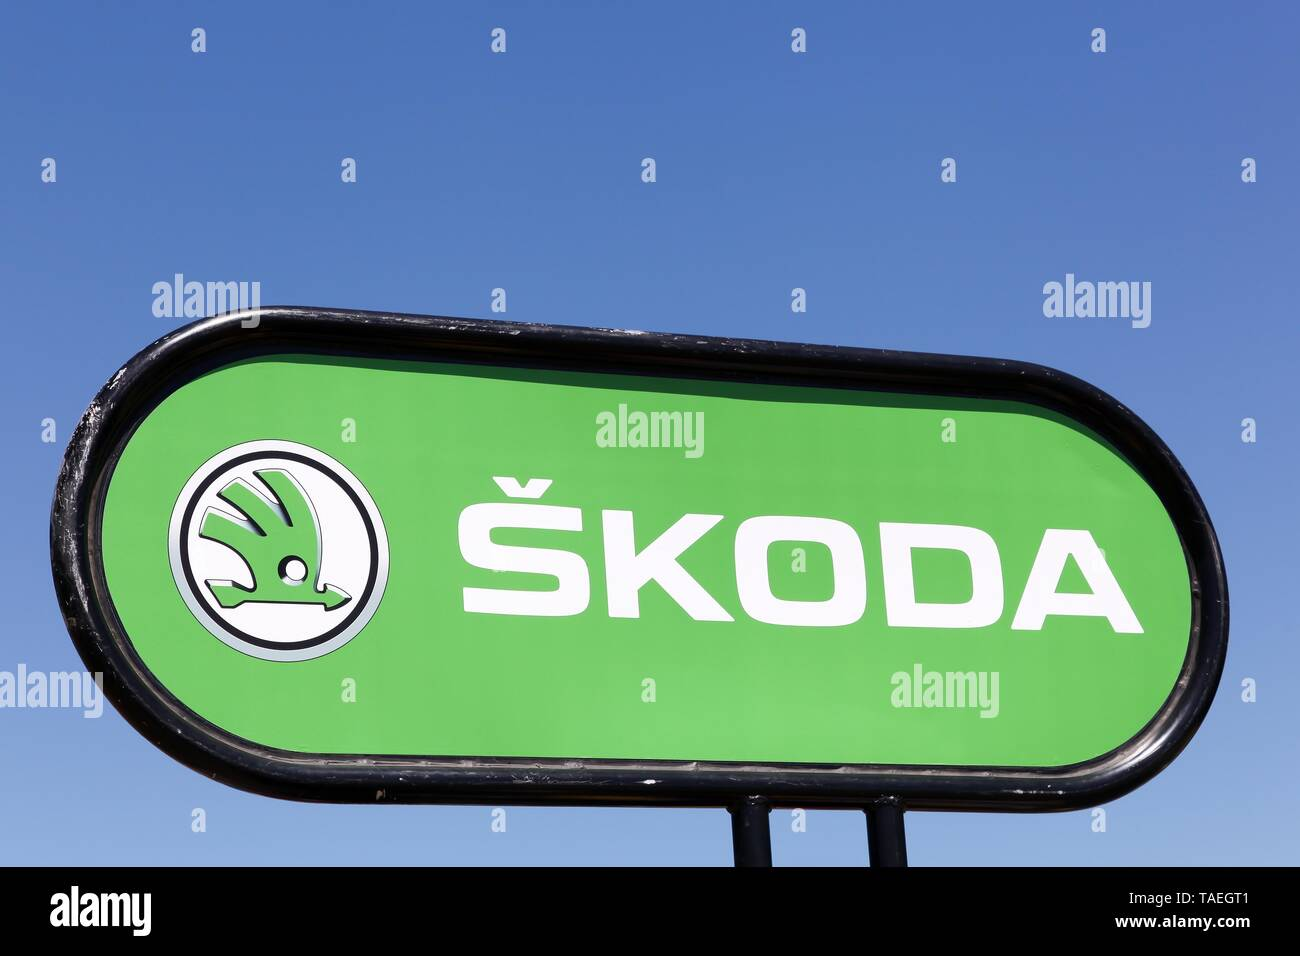 Villars, France - July 16, 2016: Skoda logo on a panel. Skoda, is a Czech automobile manufacturer founded in 1895 as Laurin and Klement - Stock Image